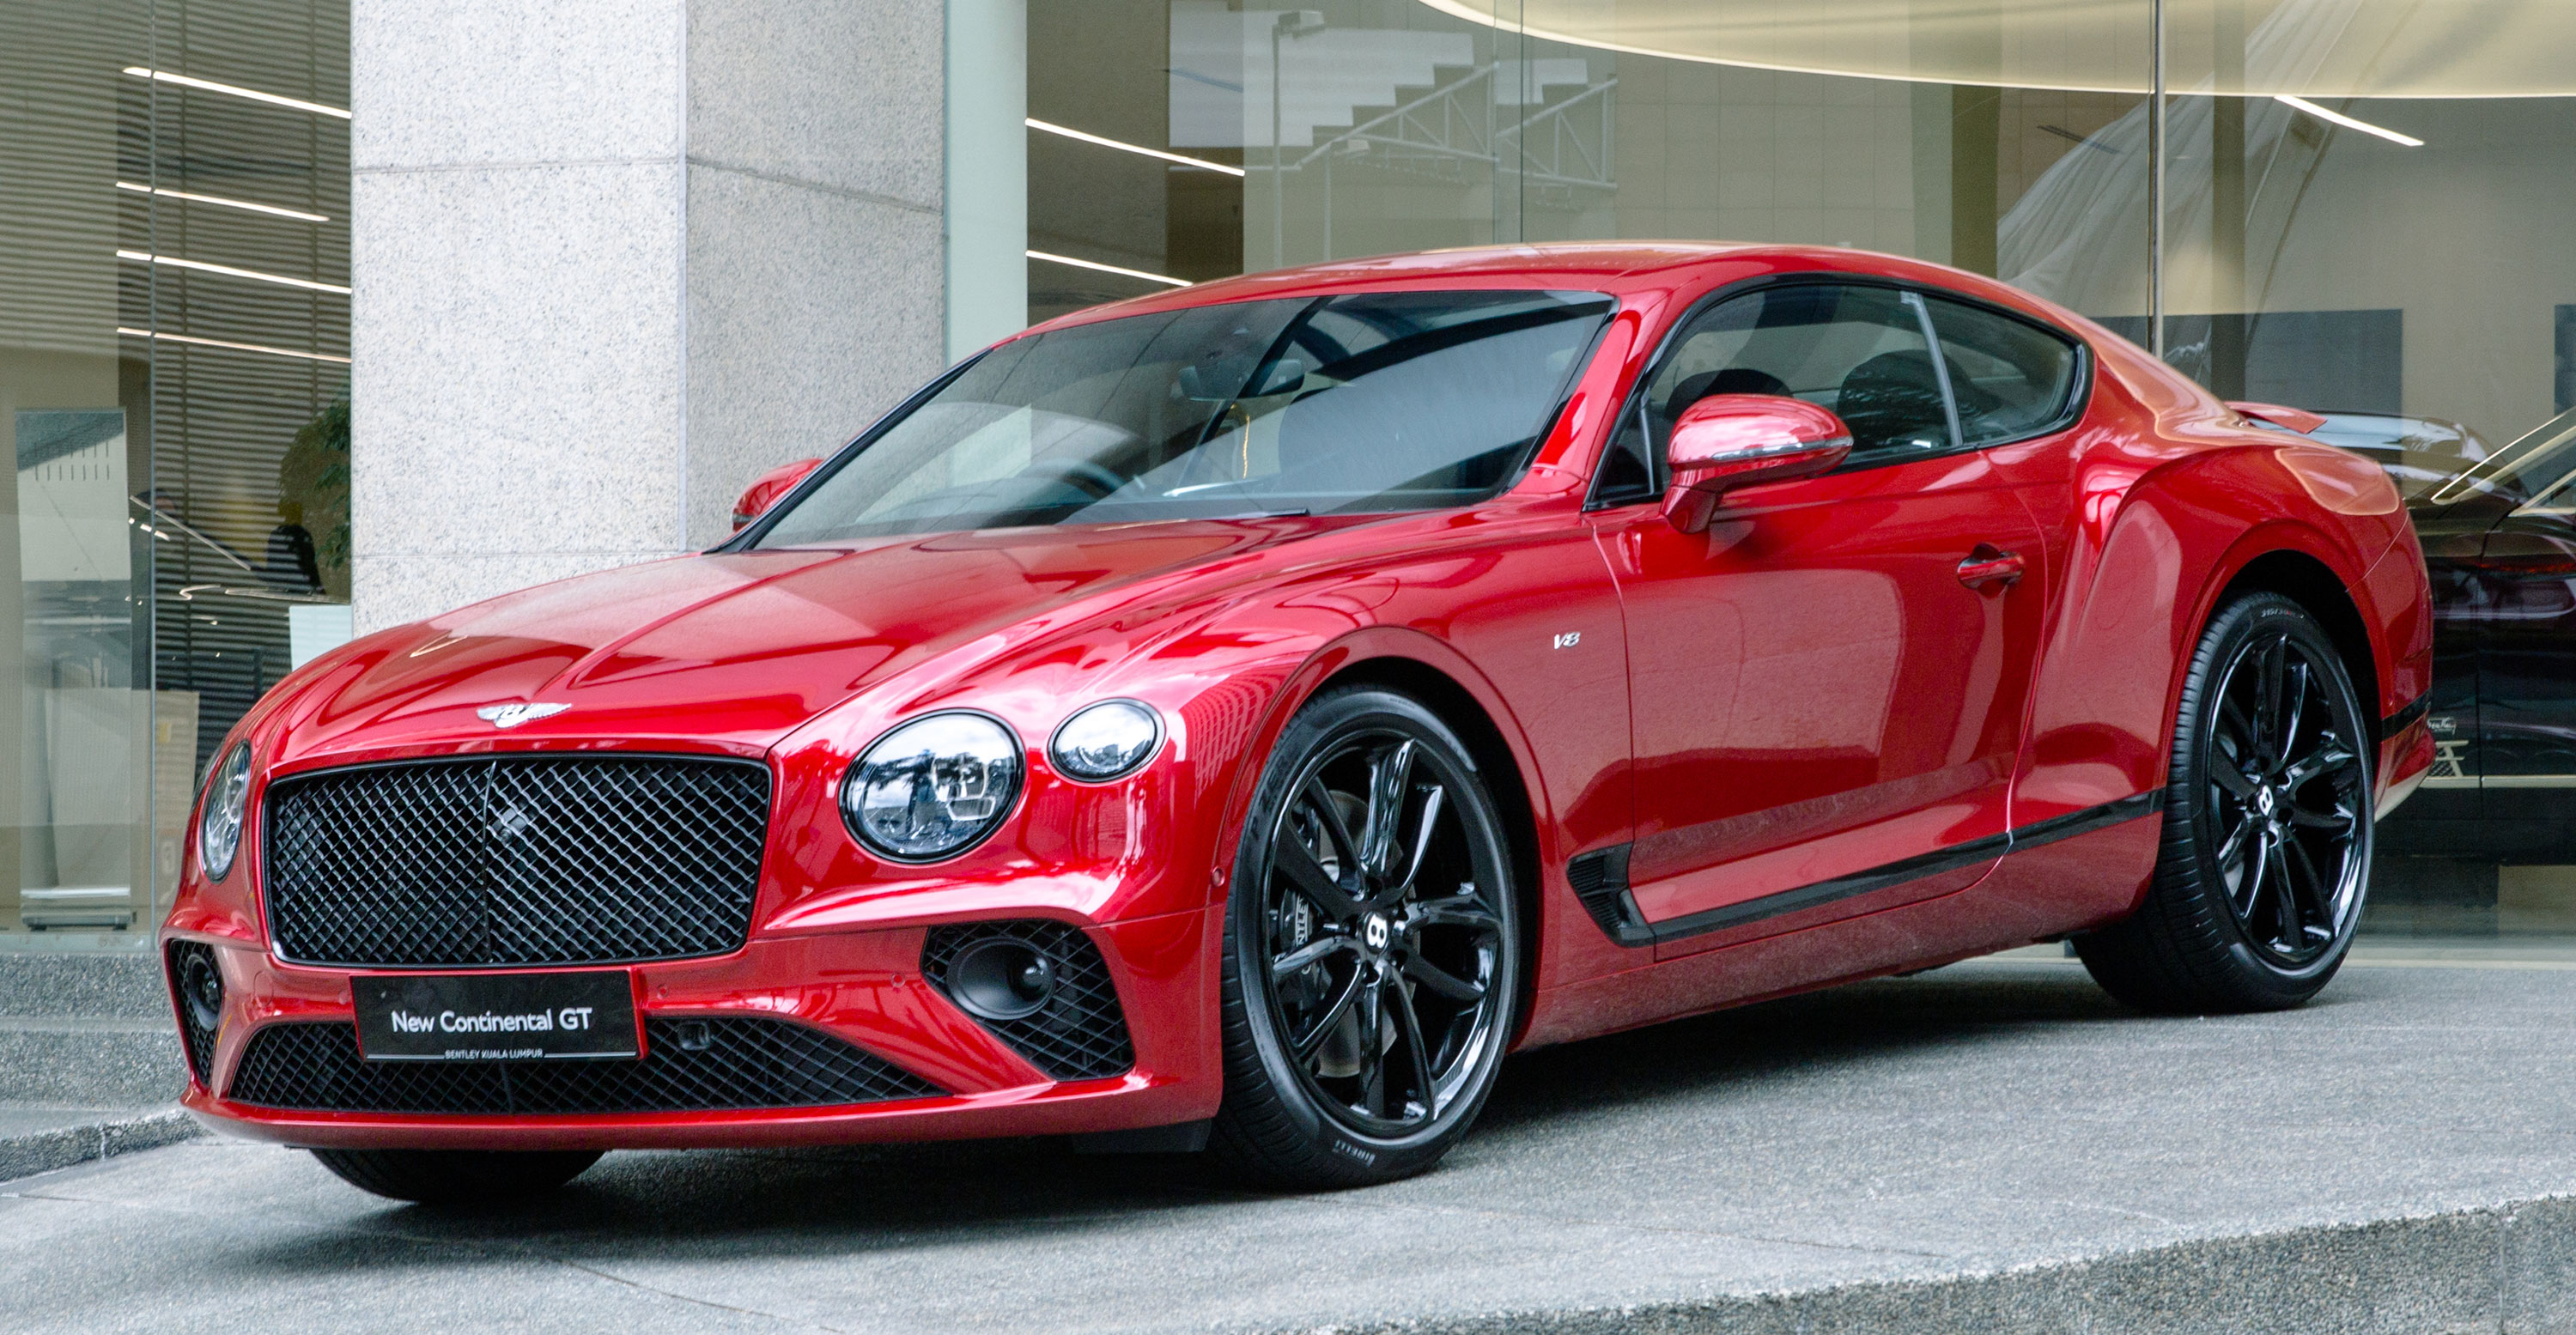 Bentley Continental Gt V8 Now In Malaysia 550 Ps 770 Nm 0 100 In 4 0s From Rm795k Before Local Tax Paultan Org